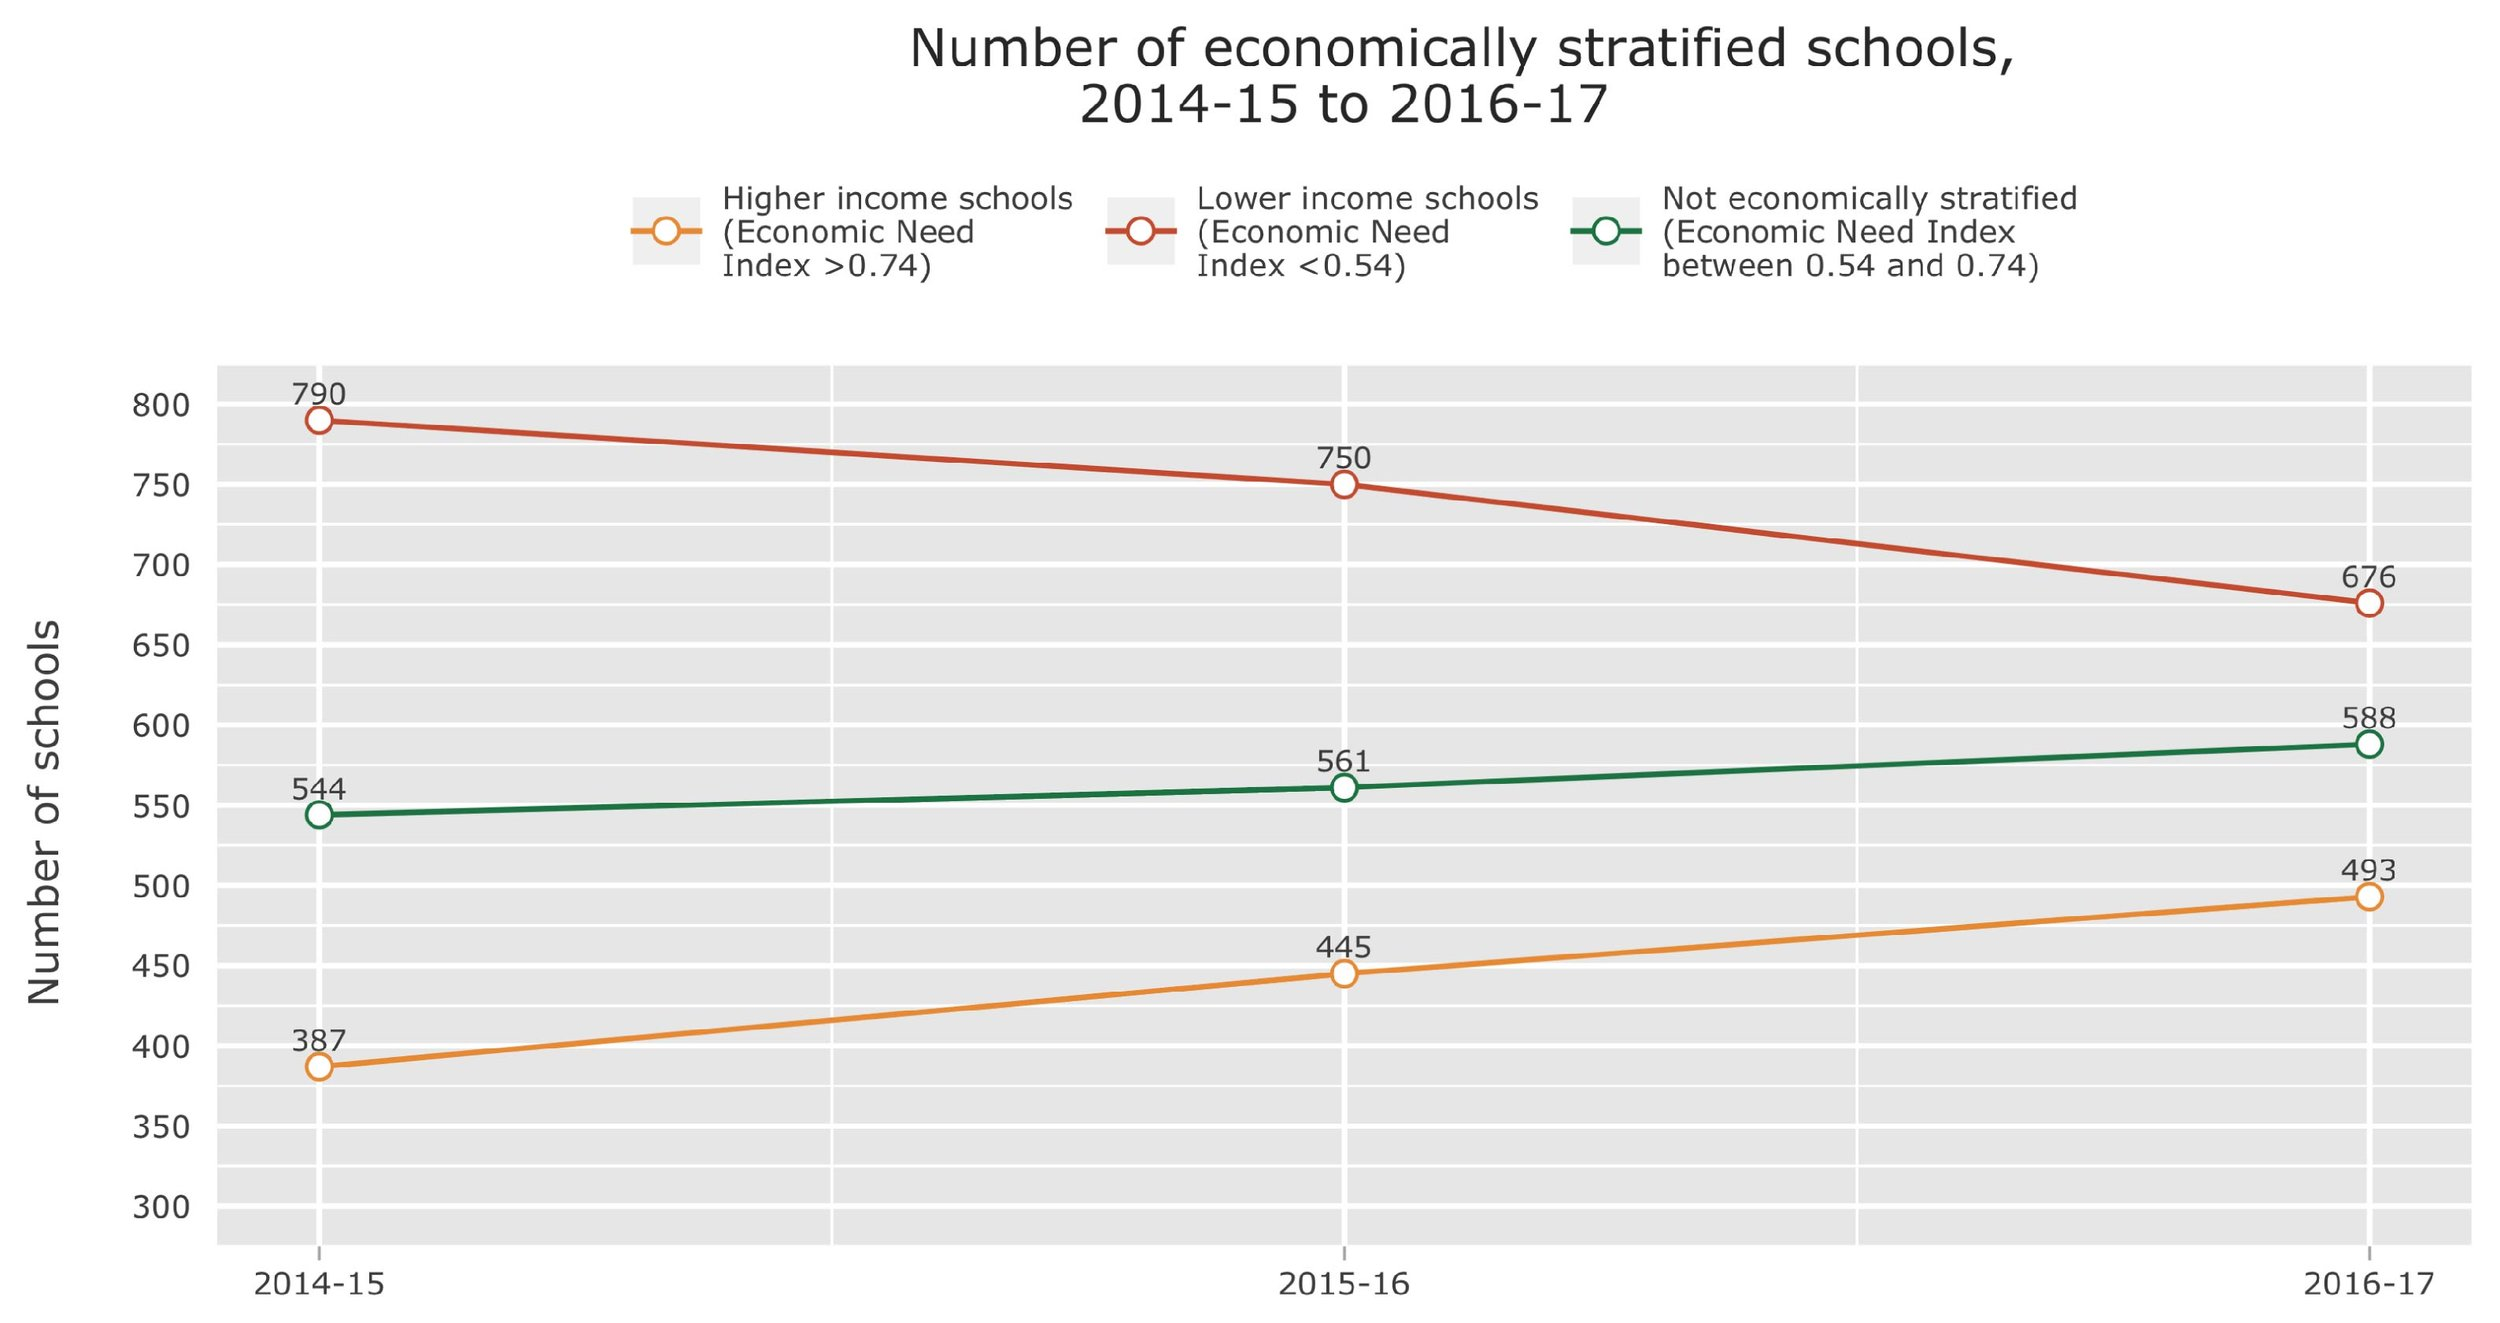 02_Figure 6 Number of economically stratified schools over time (1).jpg